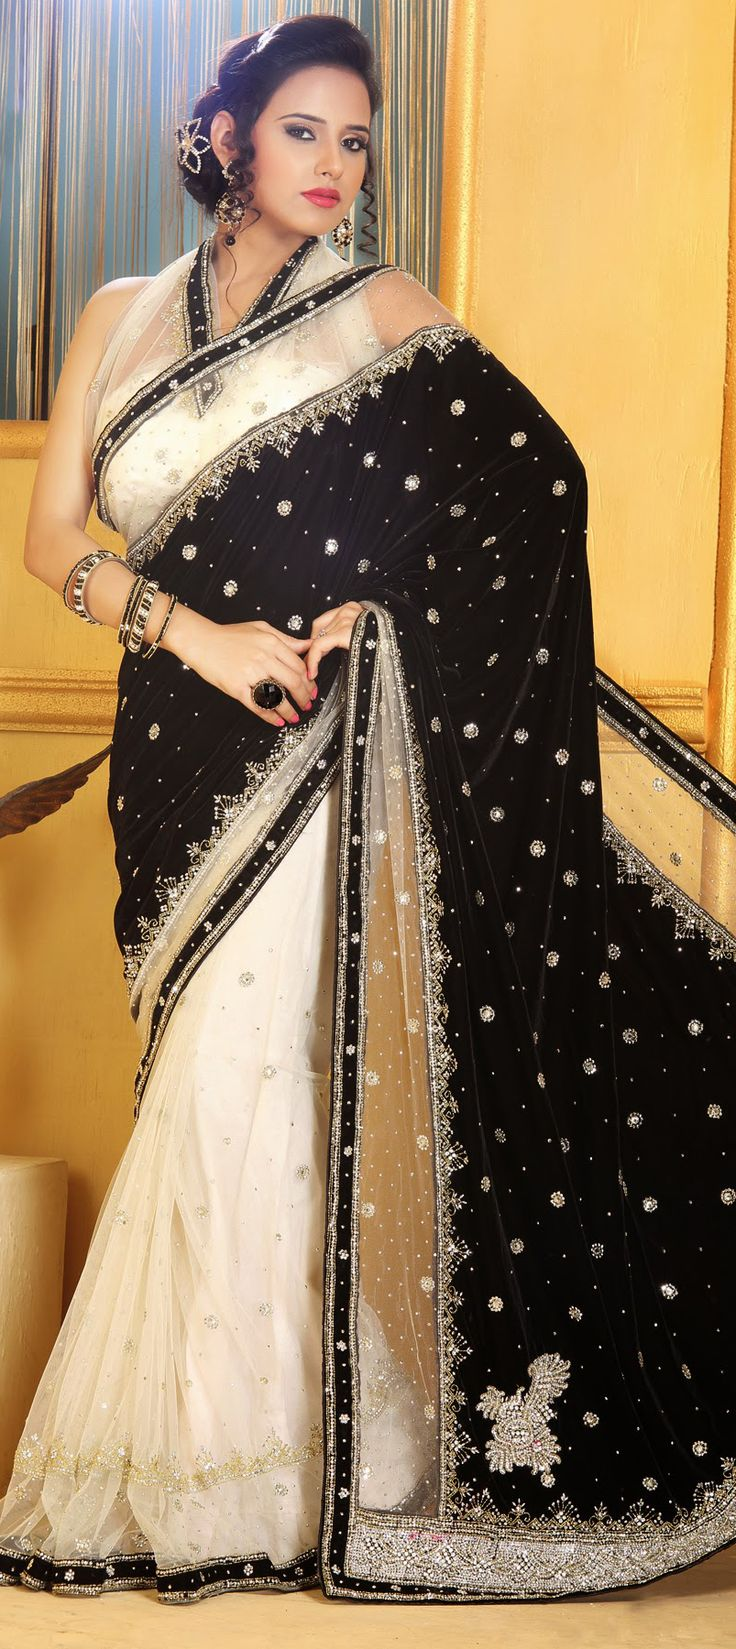 150058: Black and Grey, Beige and Brown color family Saree with matching unstitched blouse.